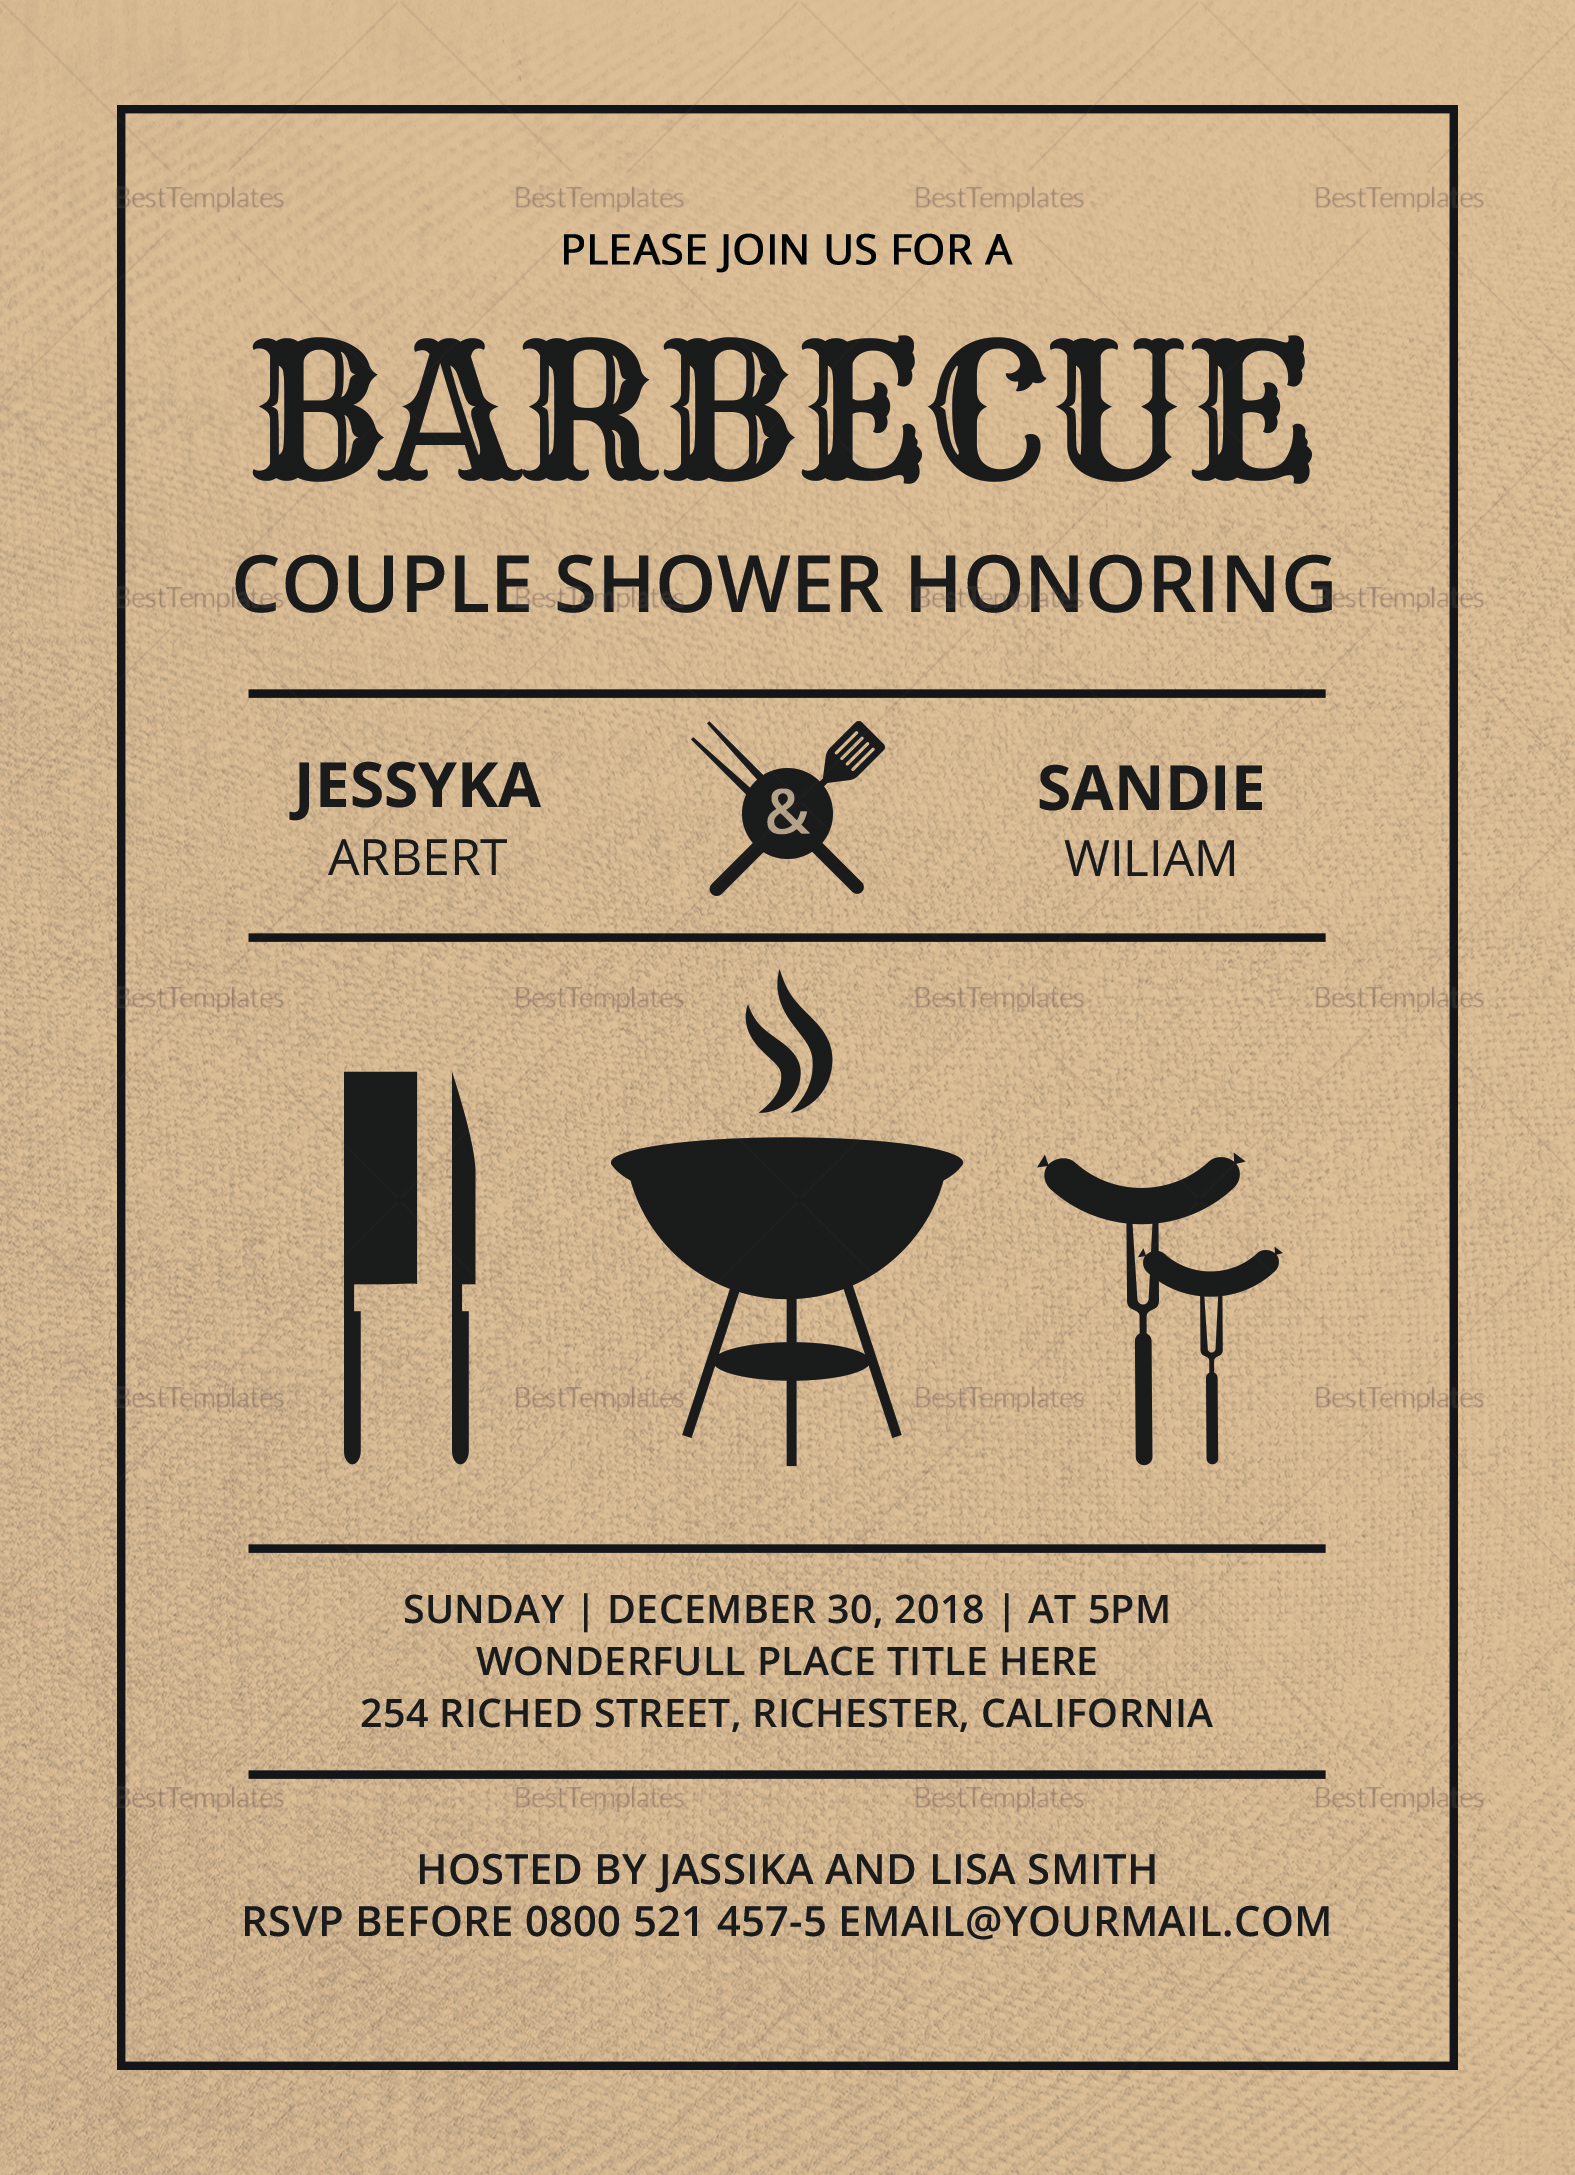 Couples Shower Invitation Templates Unique Couple Shower Bbq Invitation Design Template In Word Psd